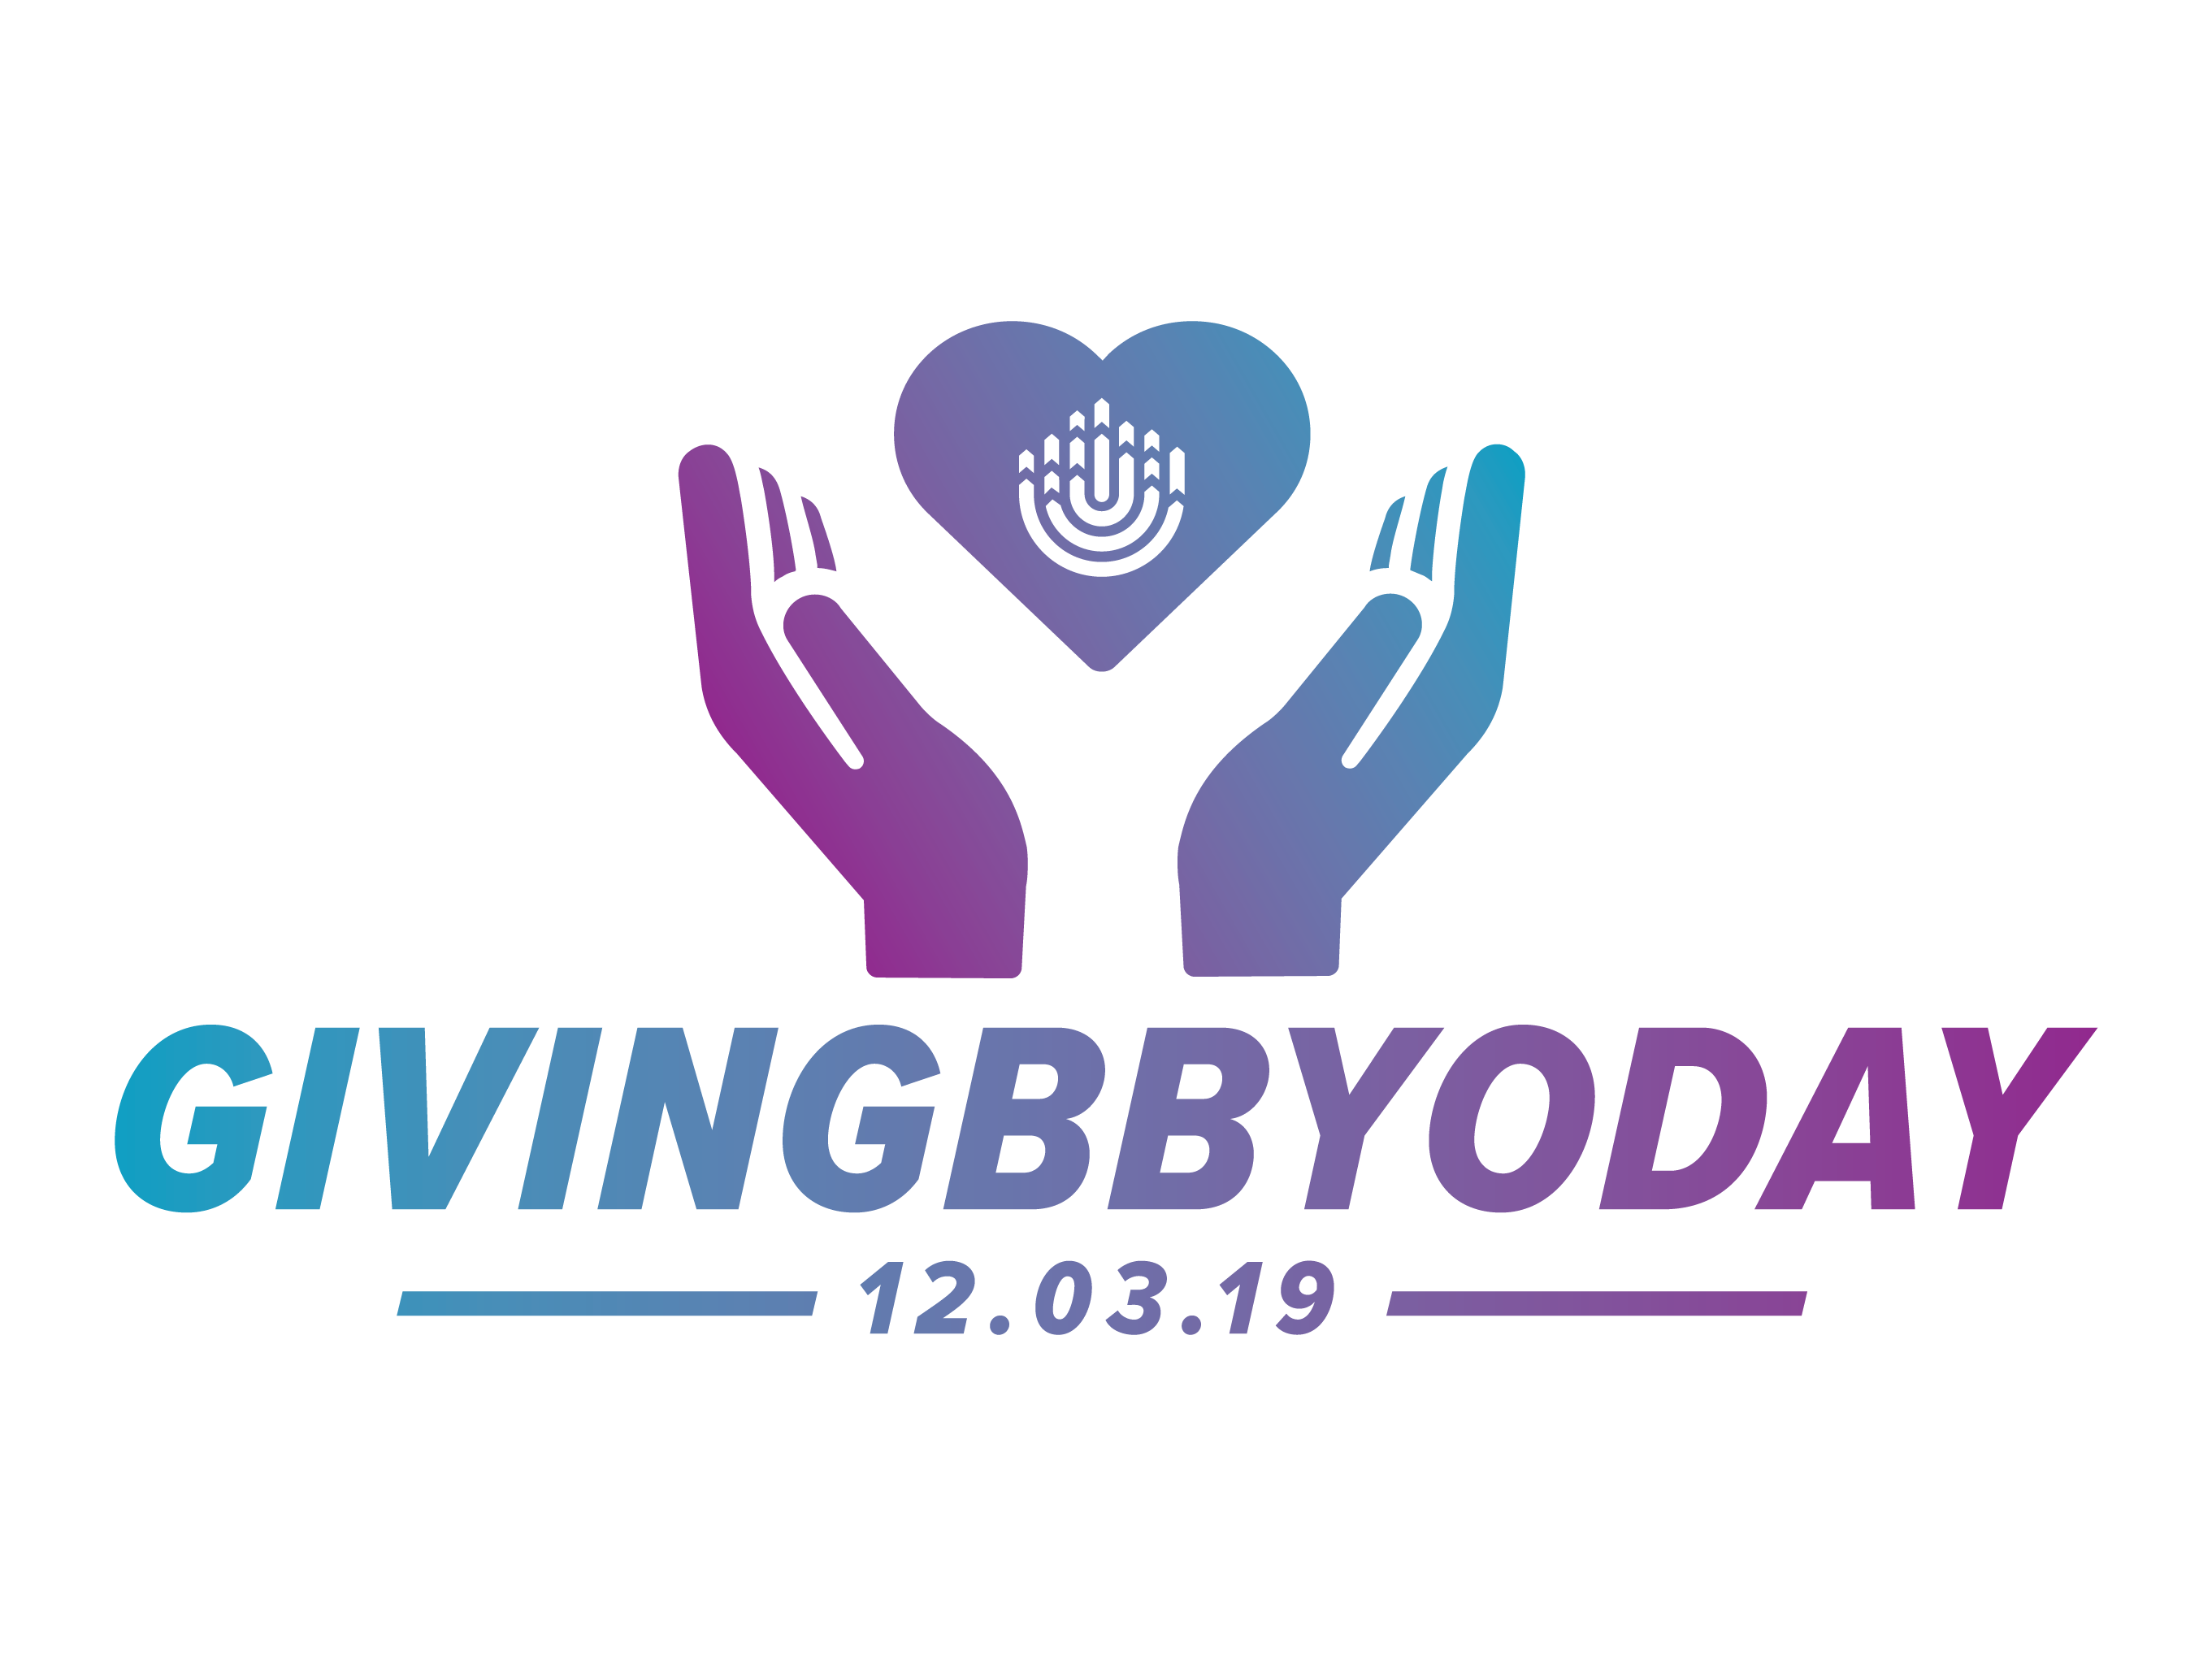 Giving bbyo day logo 2019